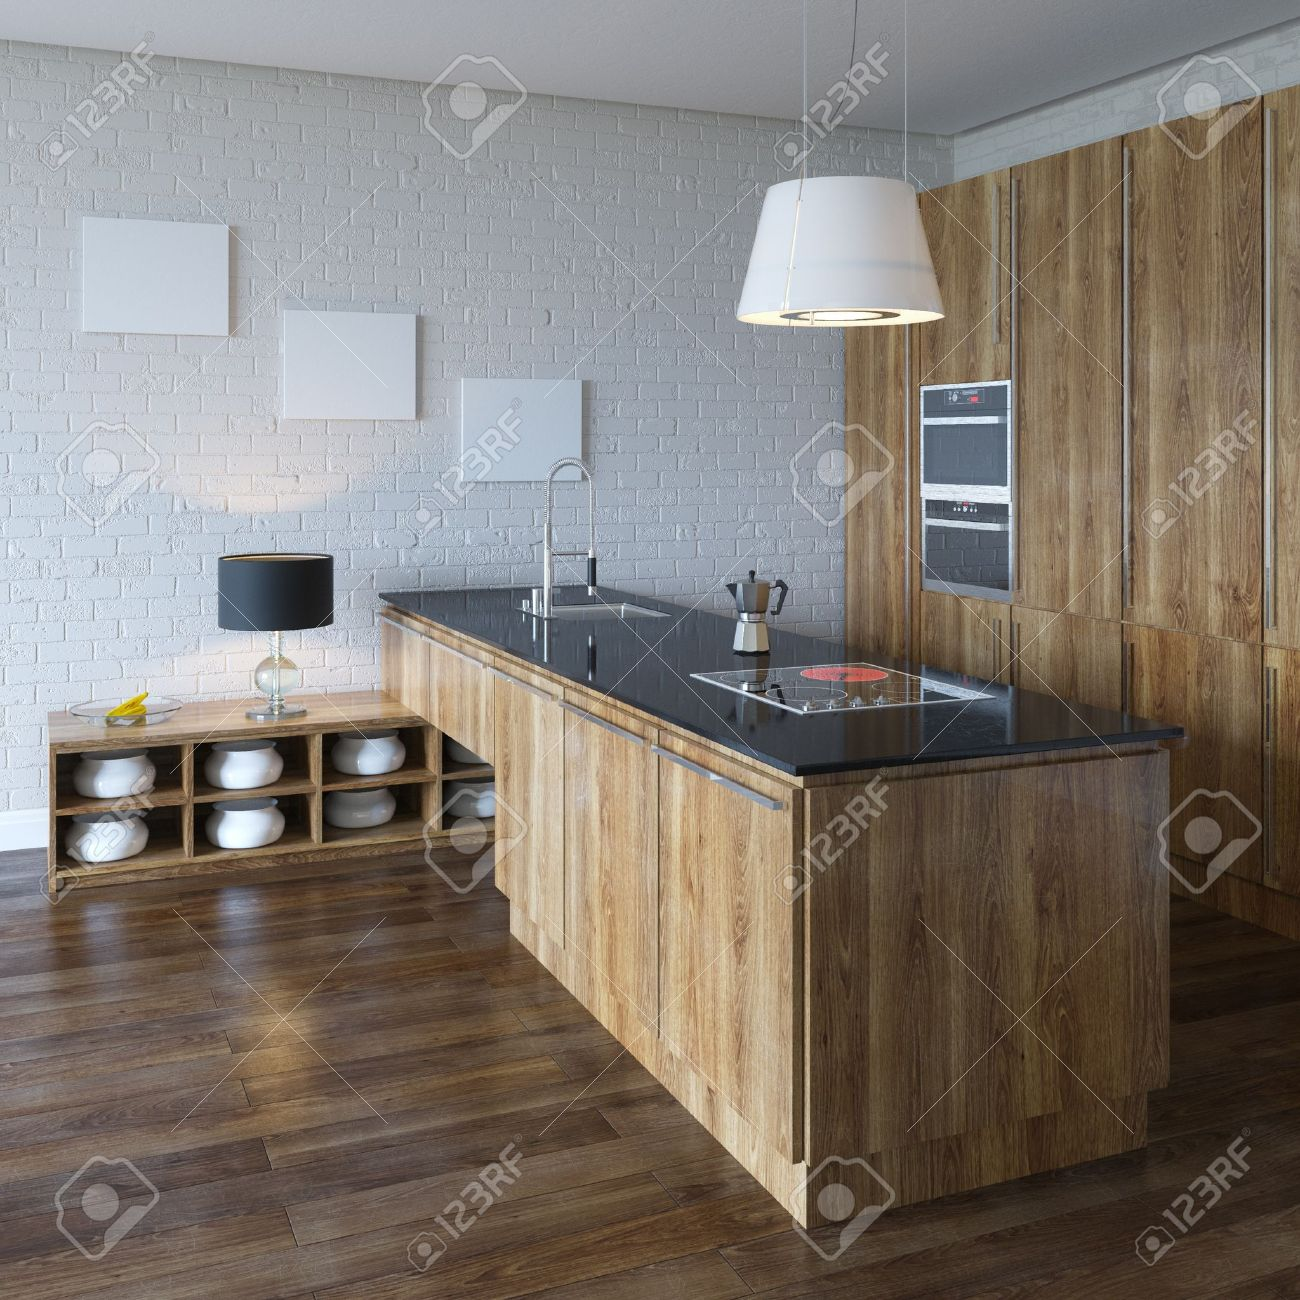 Luxury Kitchen Cabinet  Wooden Furniture  Perspective View Stock Photo - 20522711